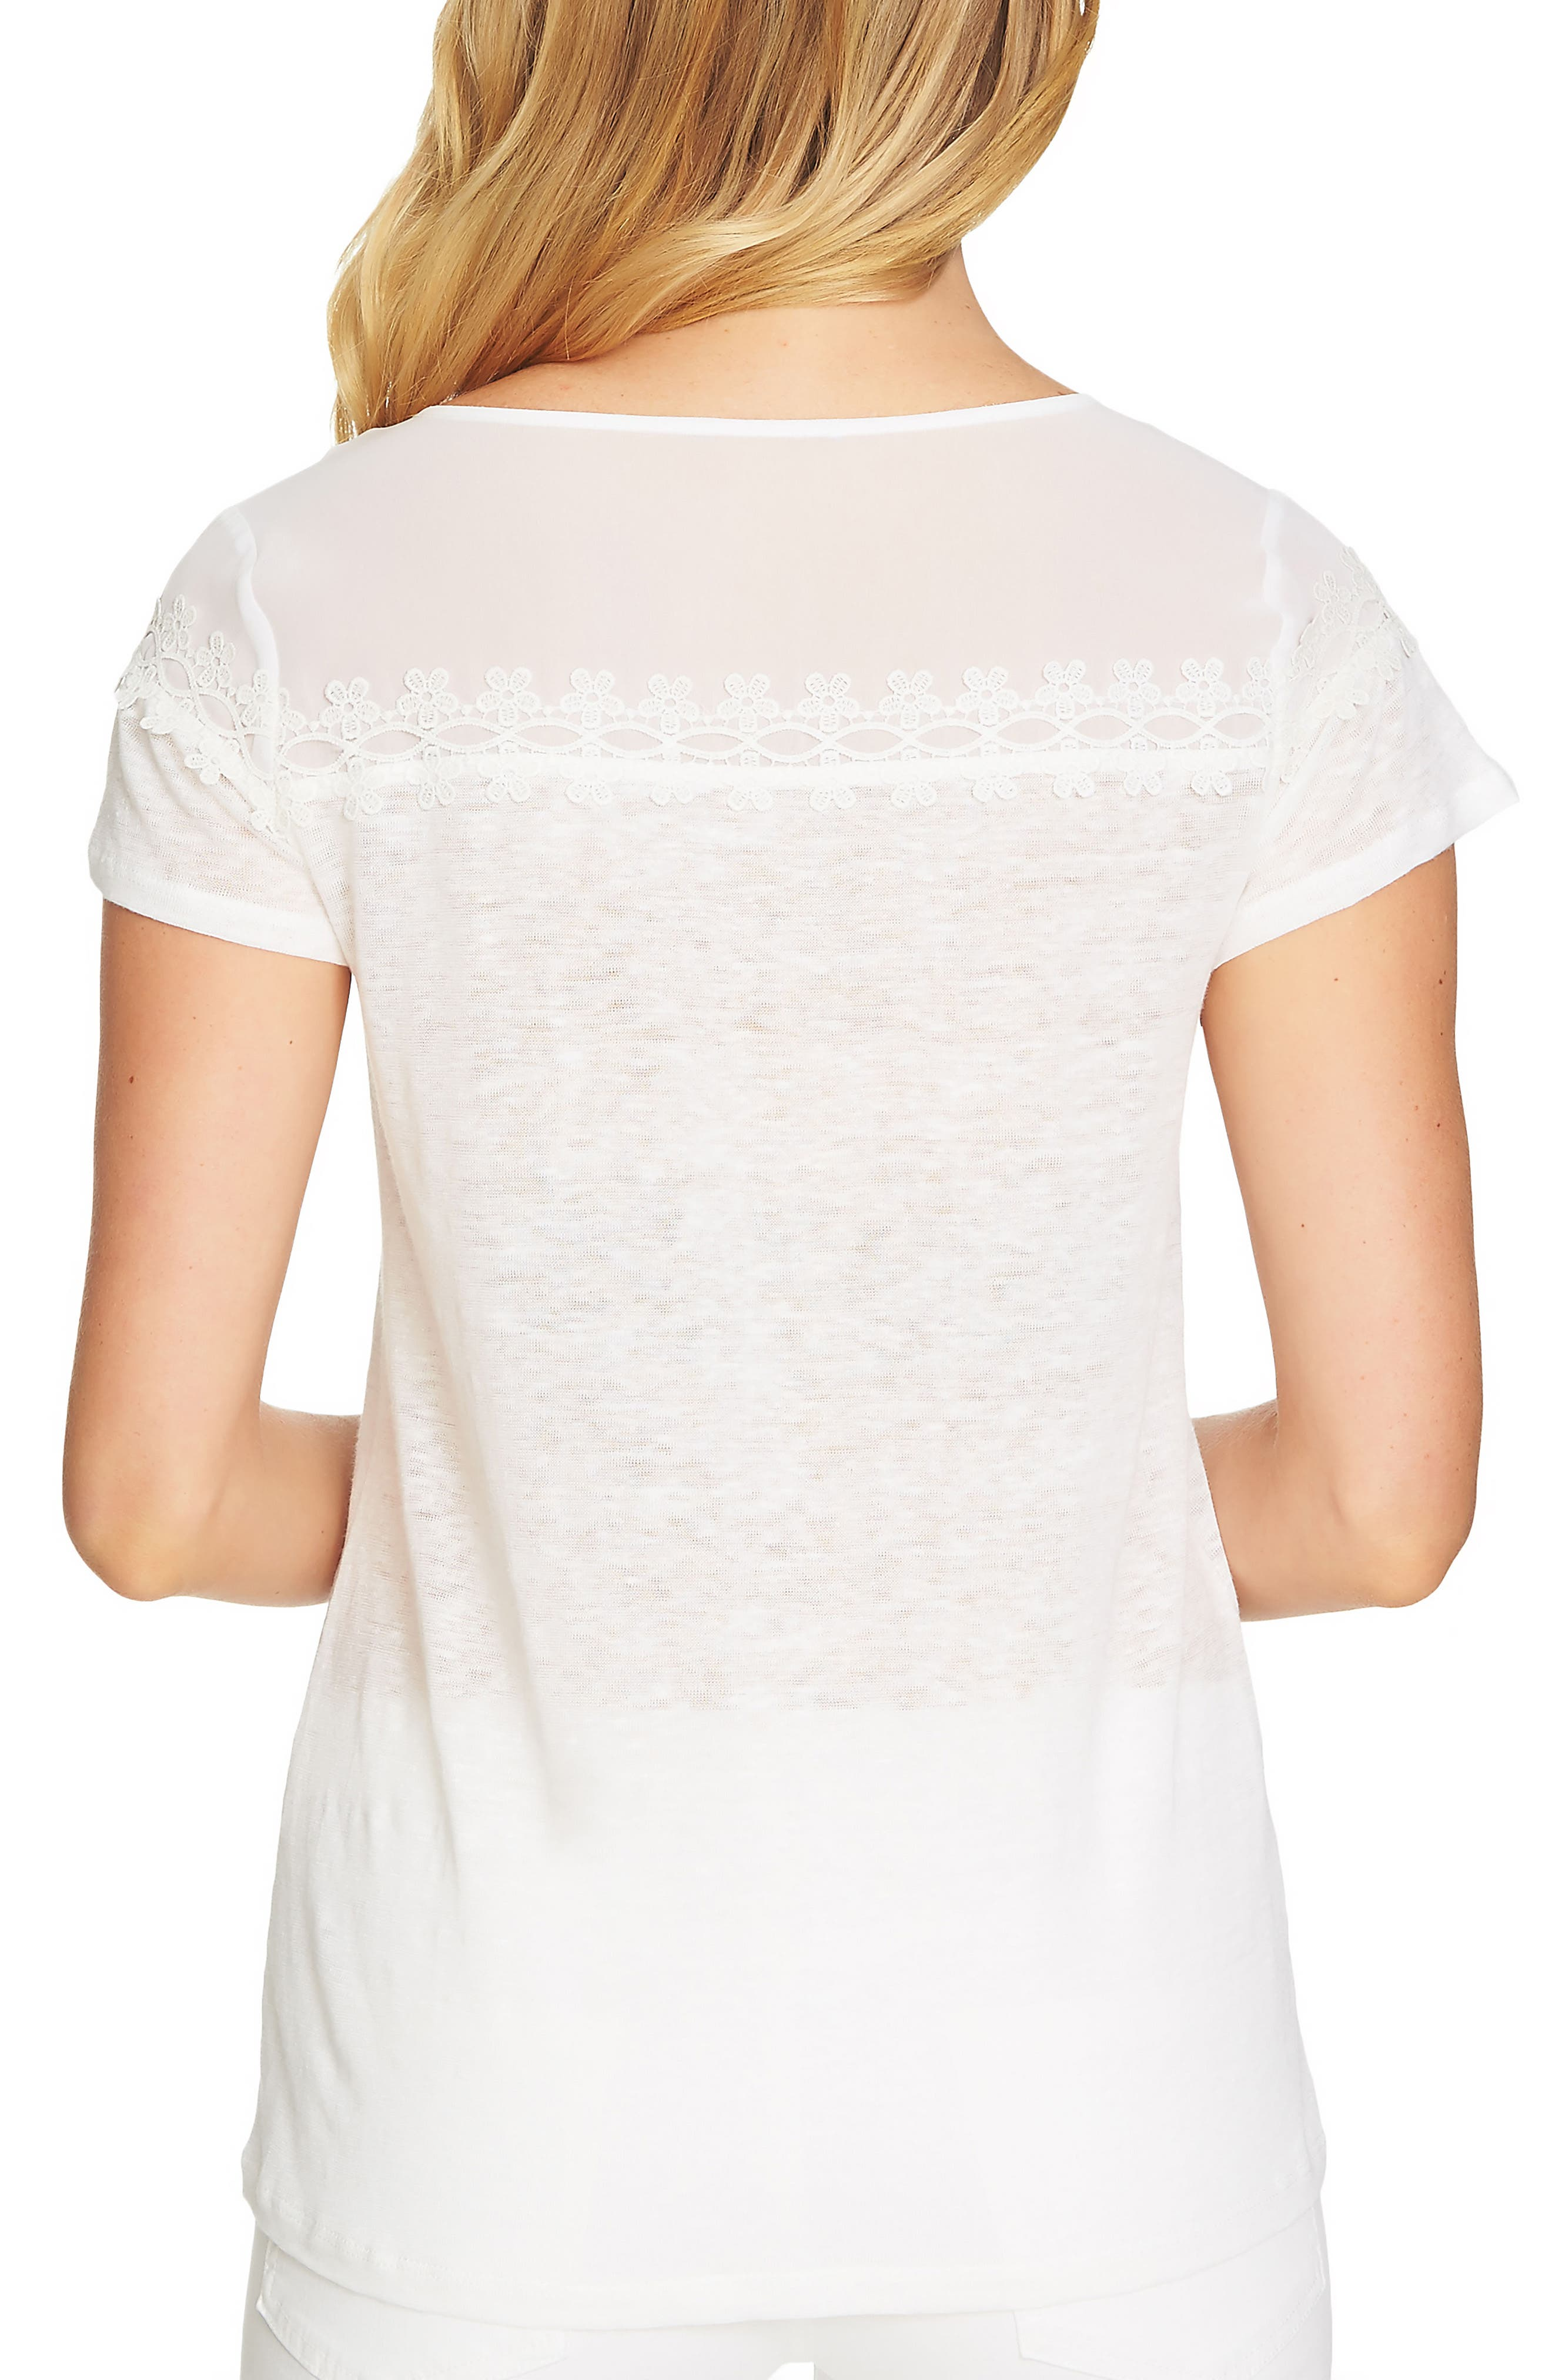 Linen and Lace Short Sleeve Top,                             Alternate thumbnail 2, color,                             145